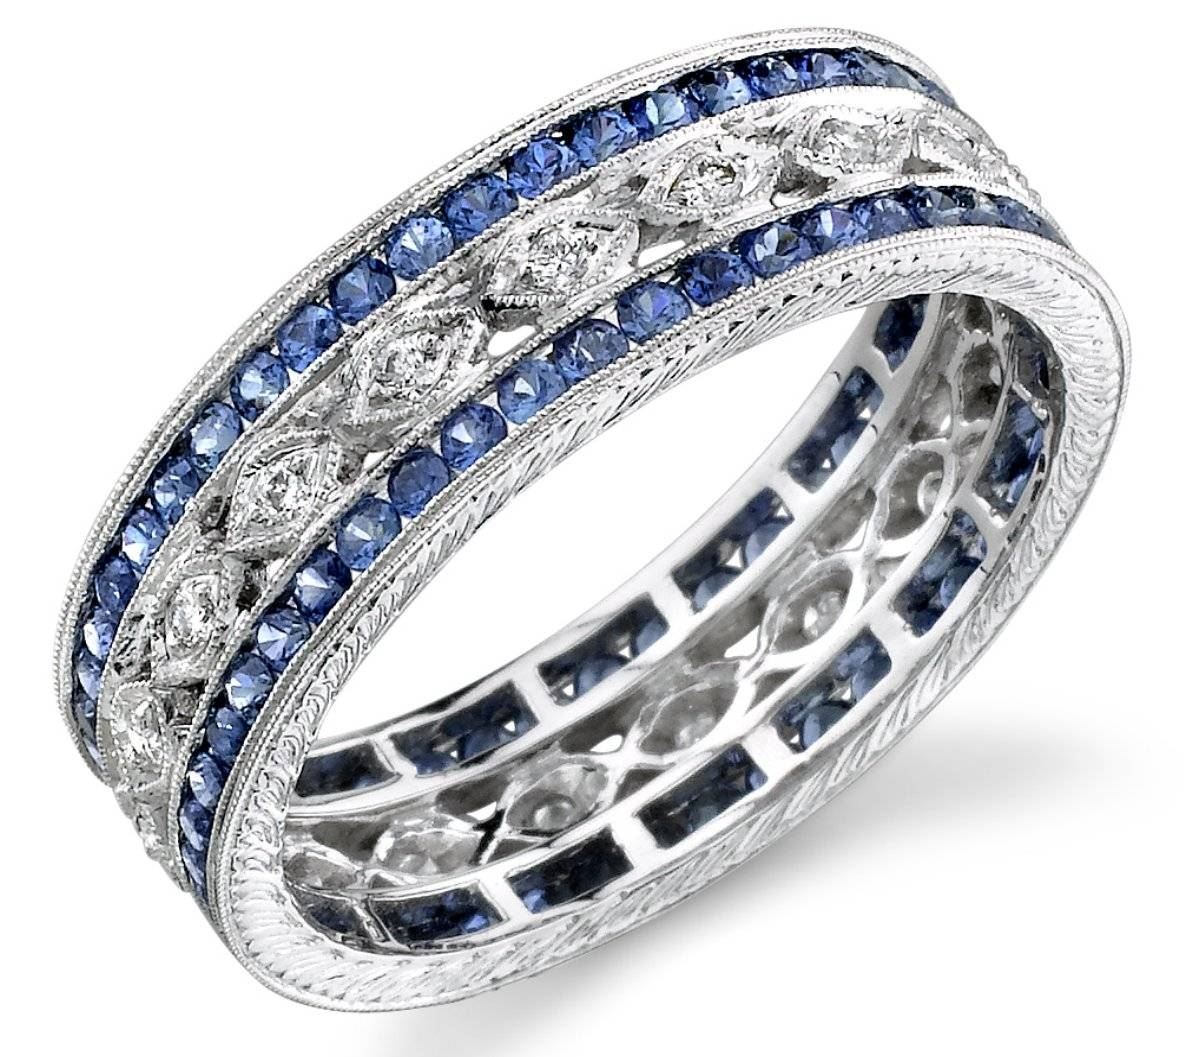 Engagement Rings : Awesome Diamond Engagement Rings With Sapphires With Sapphire And Diamond Wedding Rings (View 5 of 15)